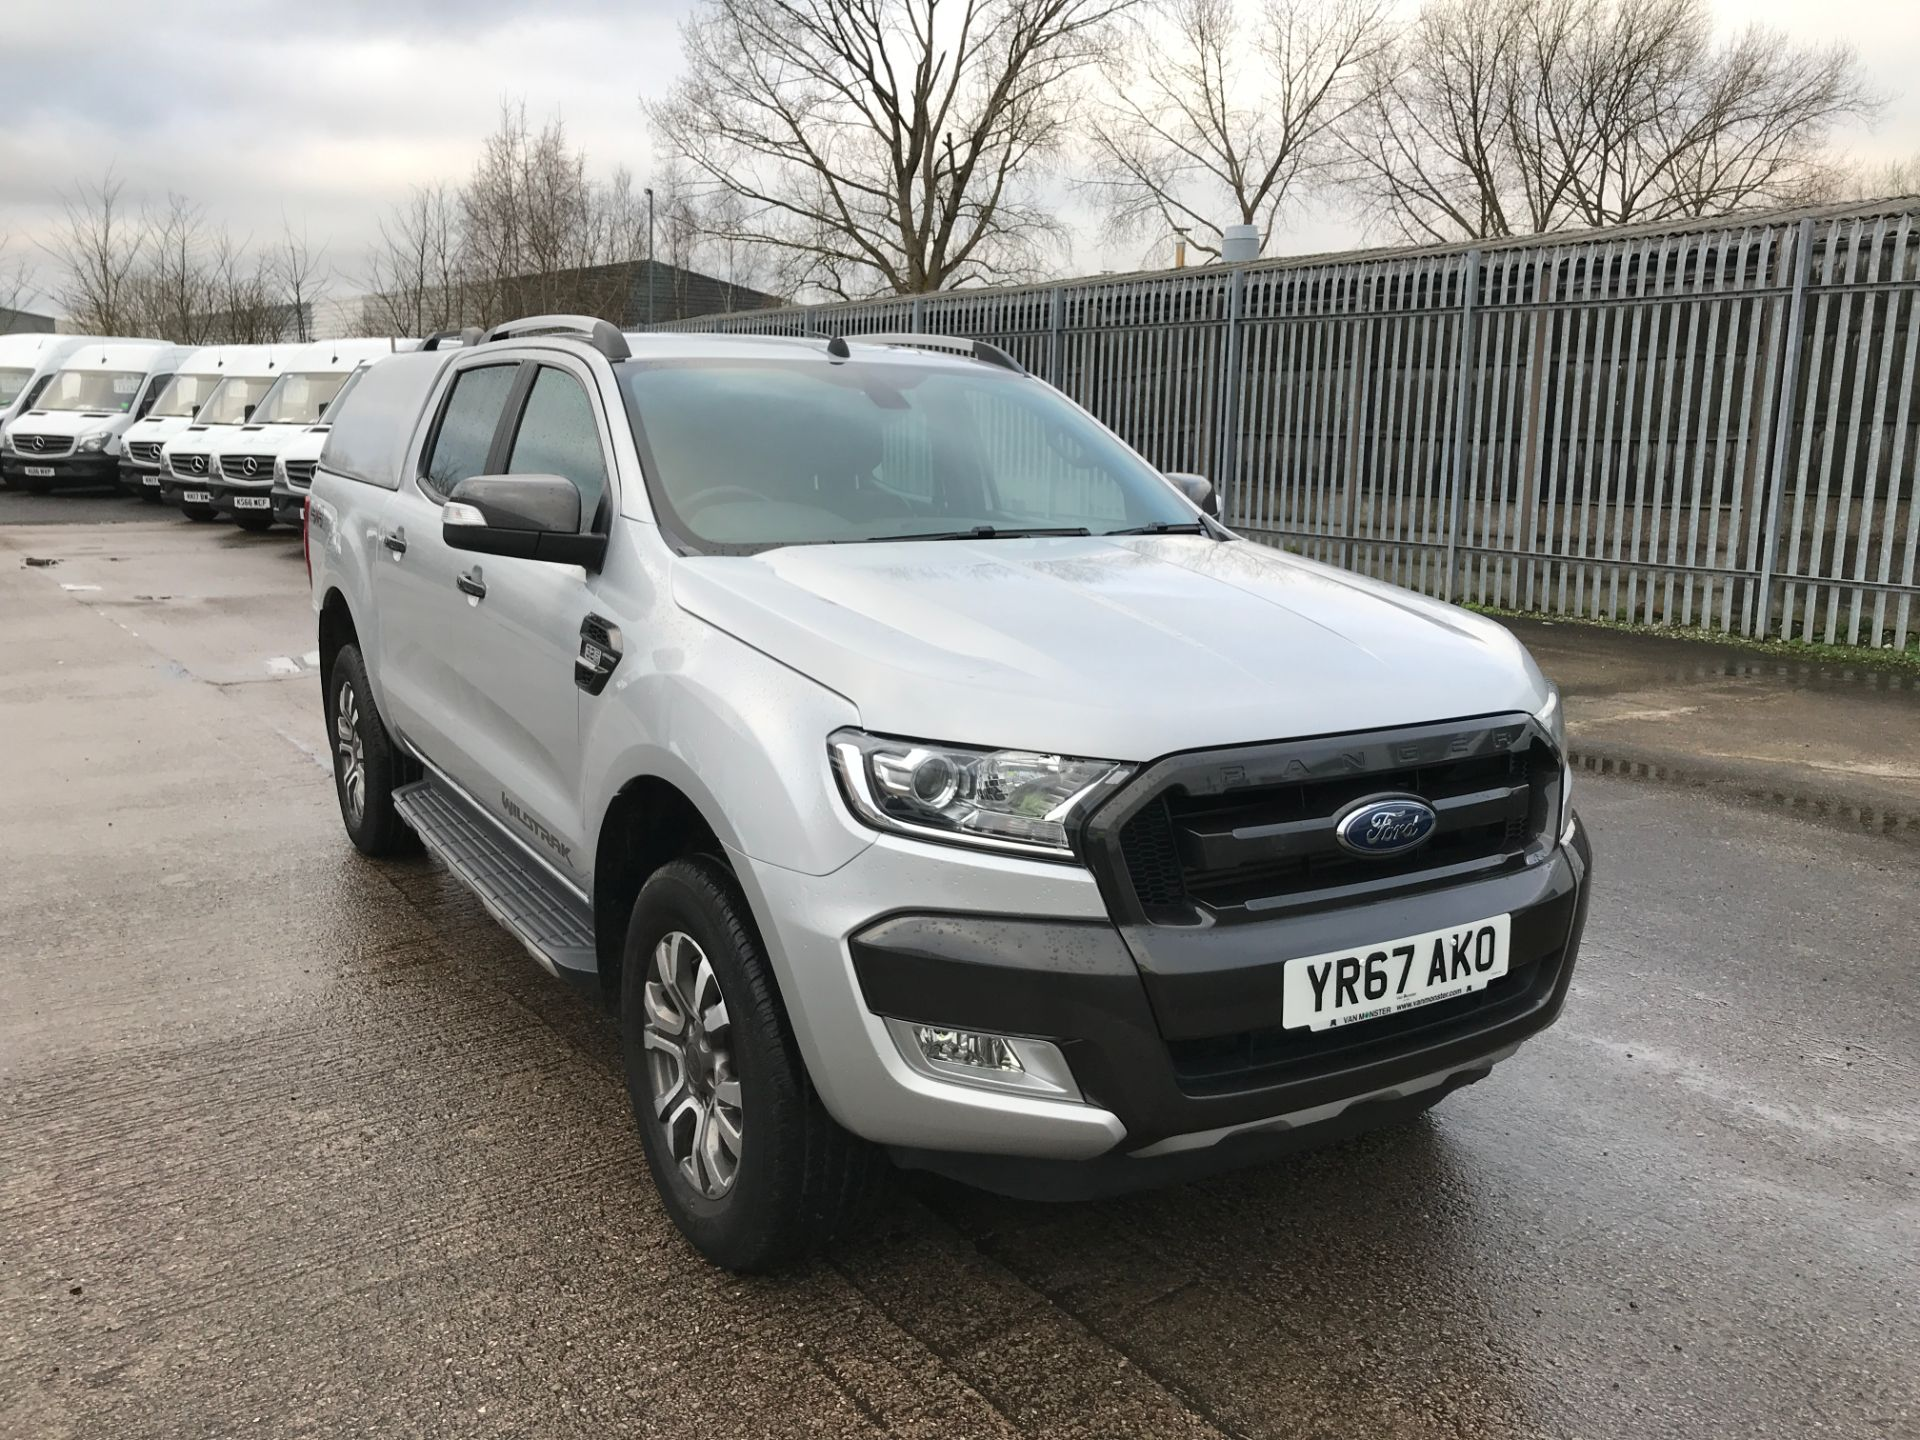 2017 Ford Ranger DOUBLE CAB 4X4 WILDTRAK 3.2TDI 200PS EURO 5 (YR67AKO)